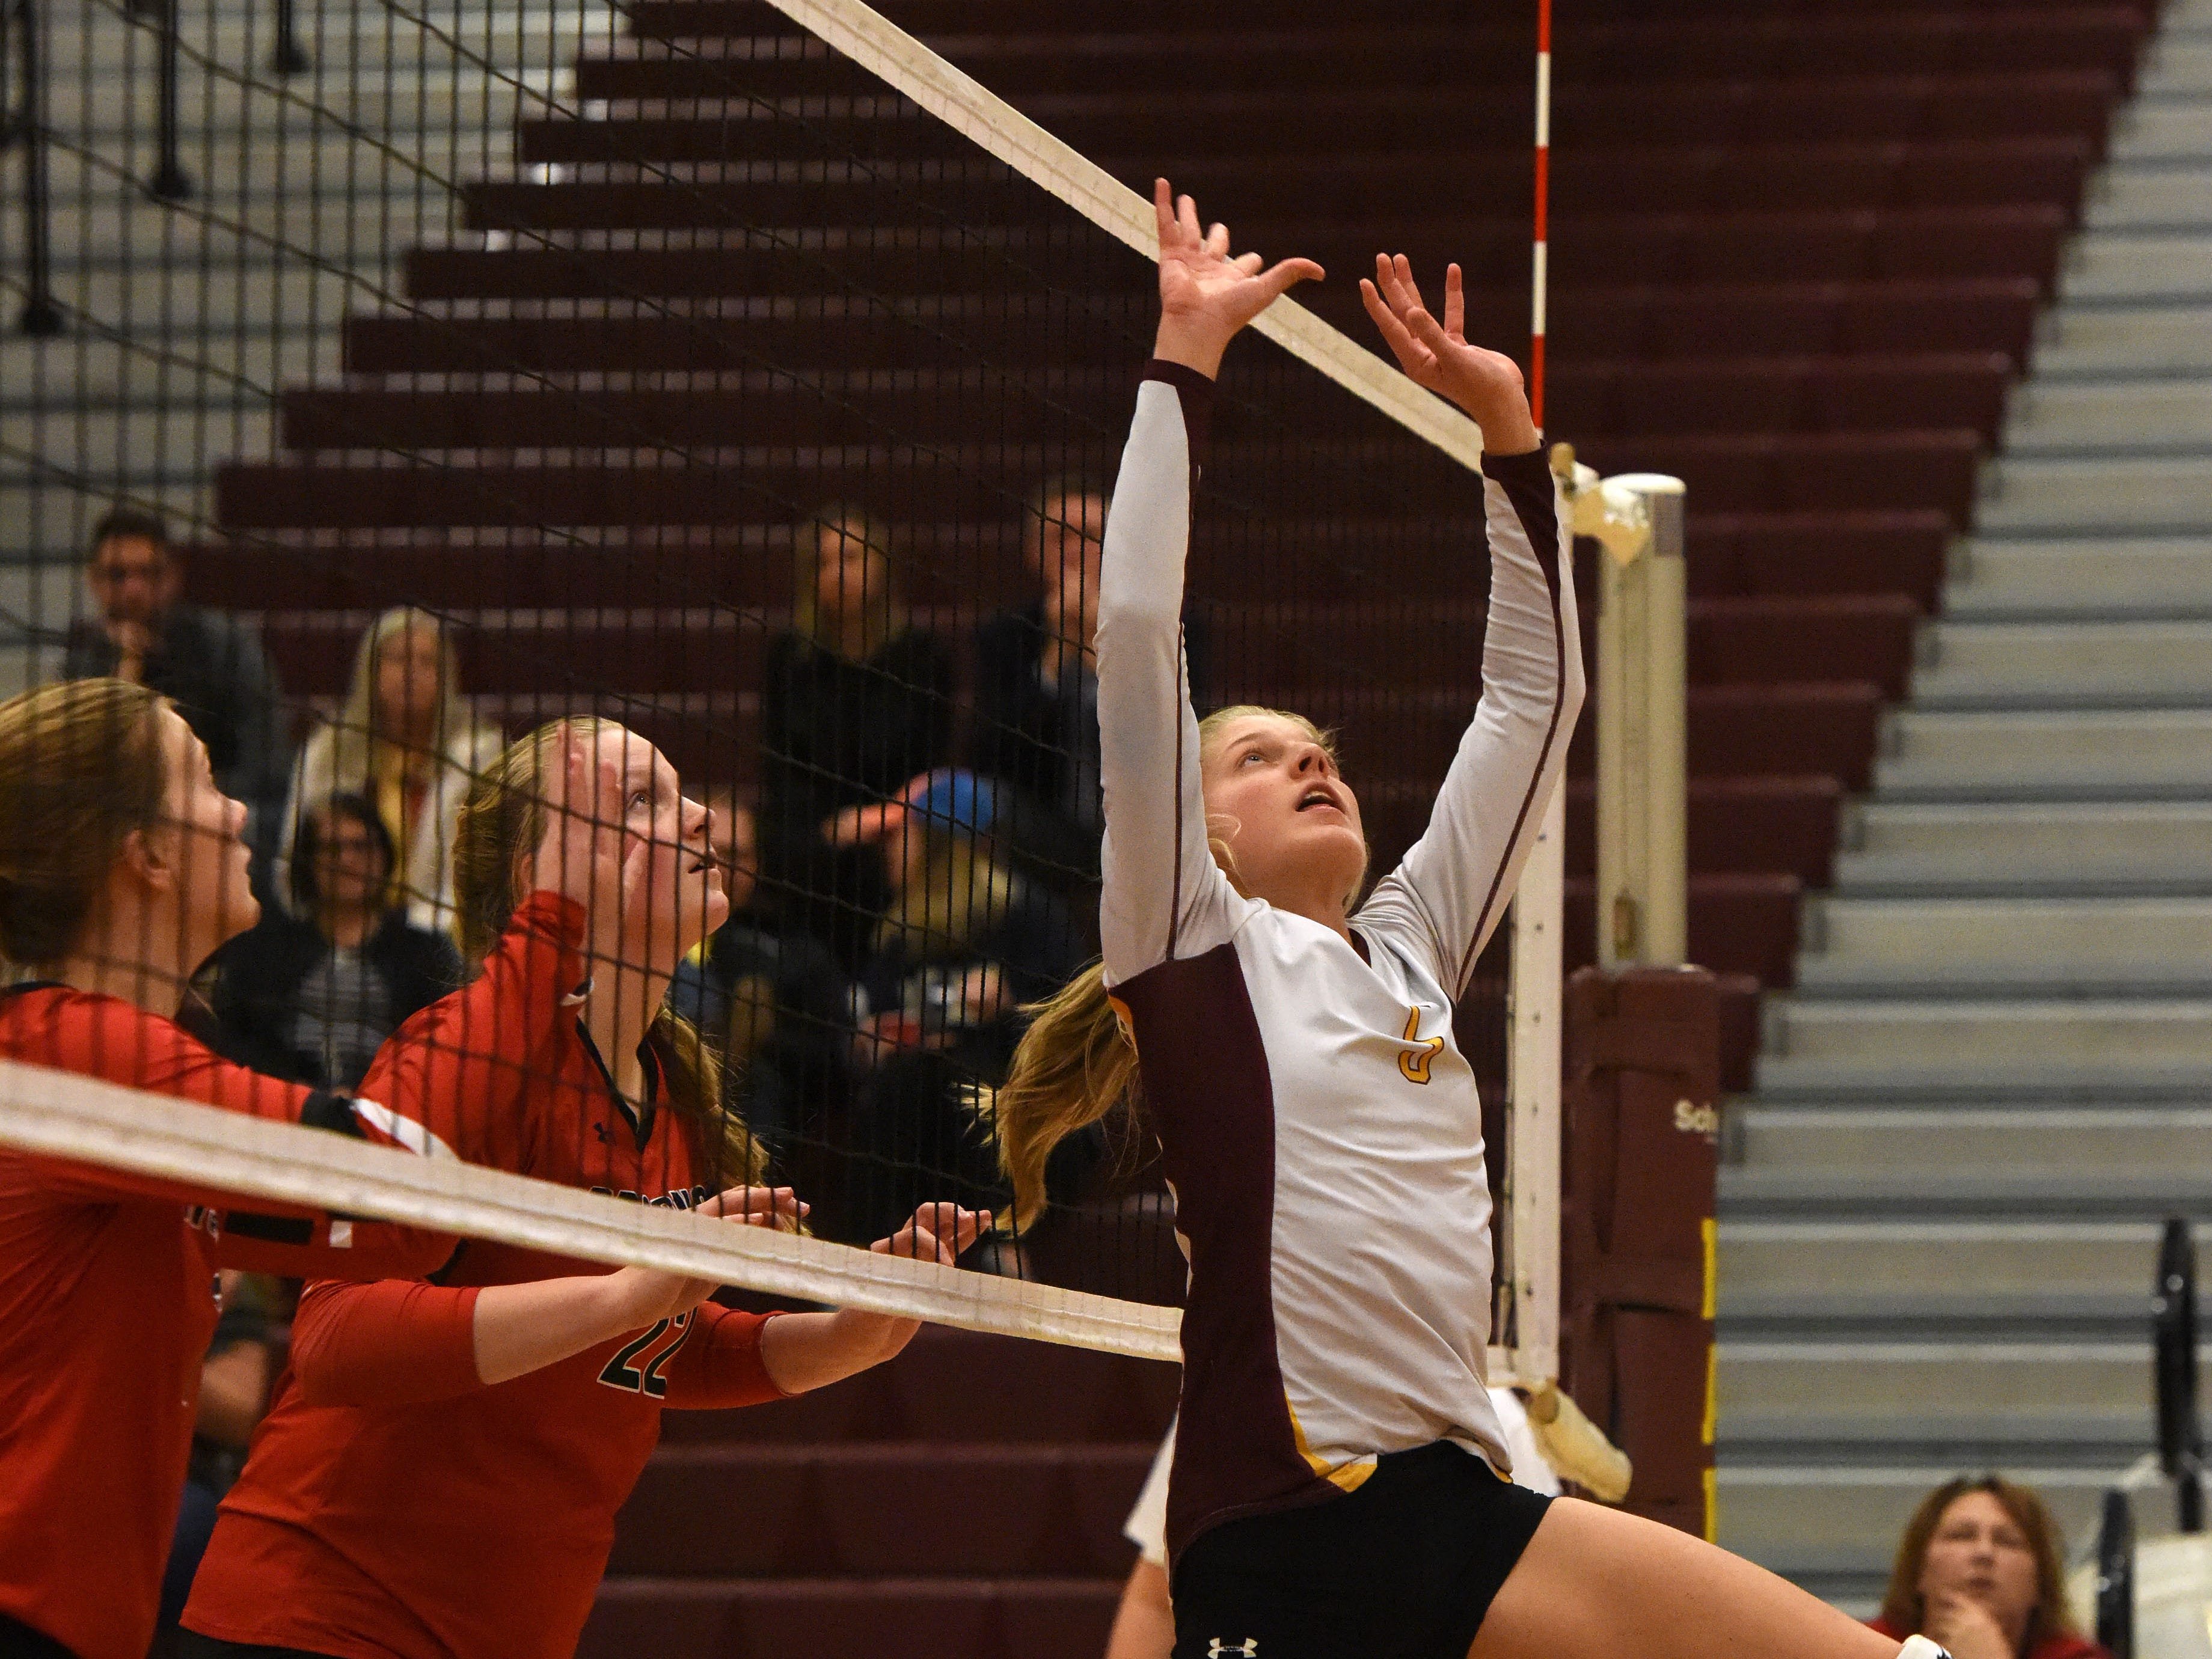 Harrisburg's Liz Dierks (5) bumps the ball during a match against Brookings Tuesday, Oct. 30, 2018 in Harrisburg, S.D.